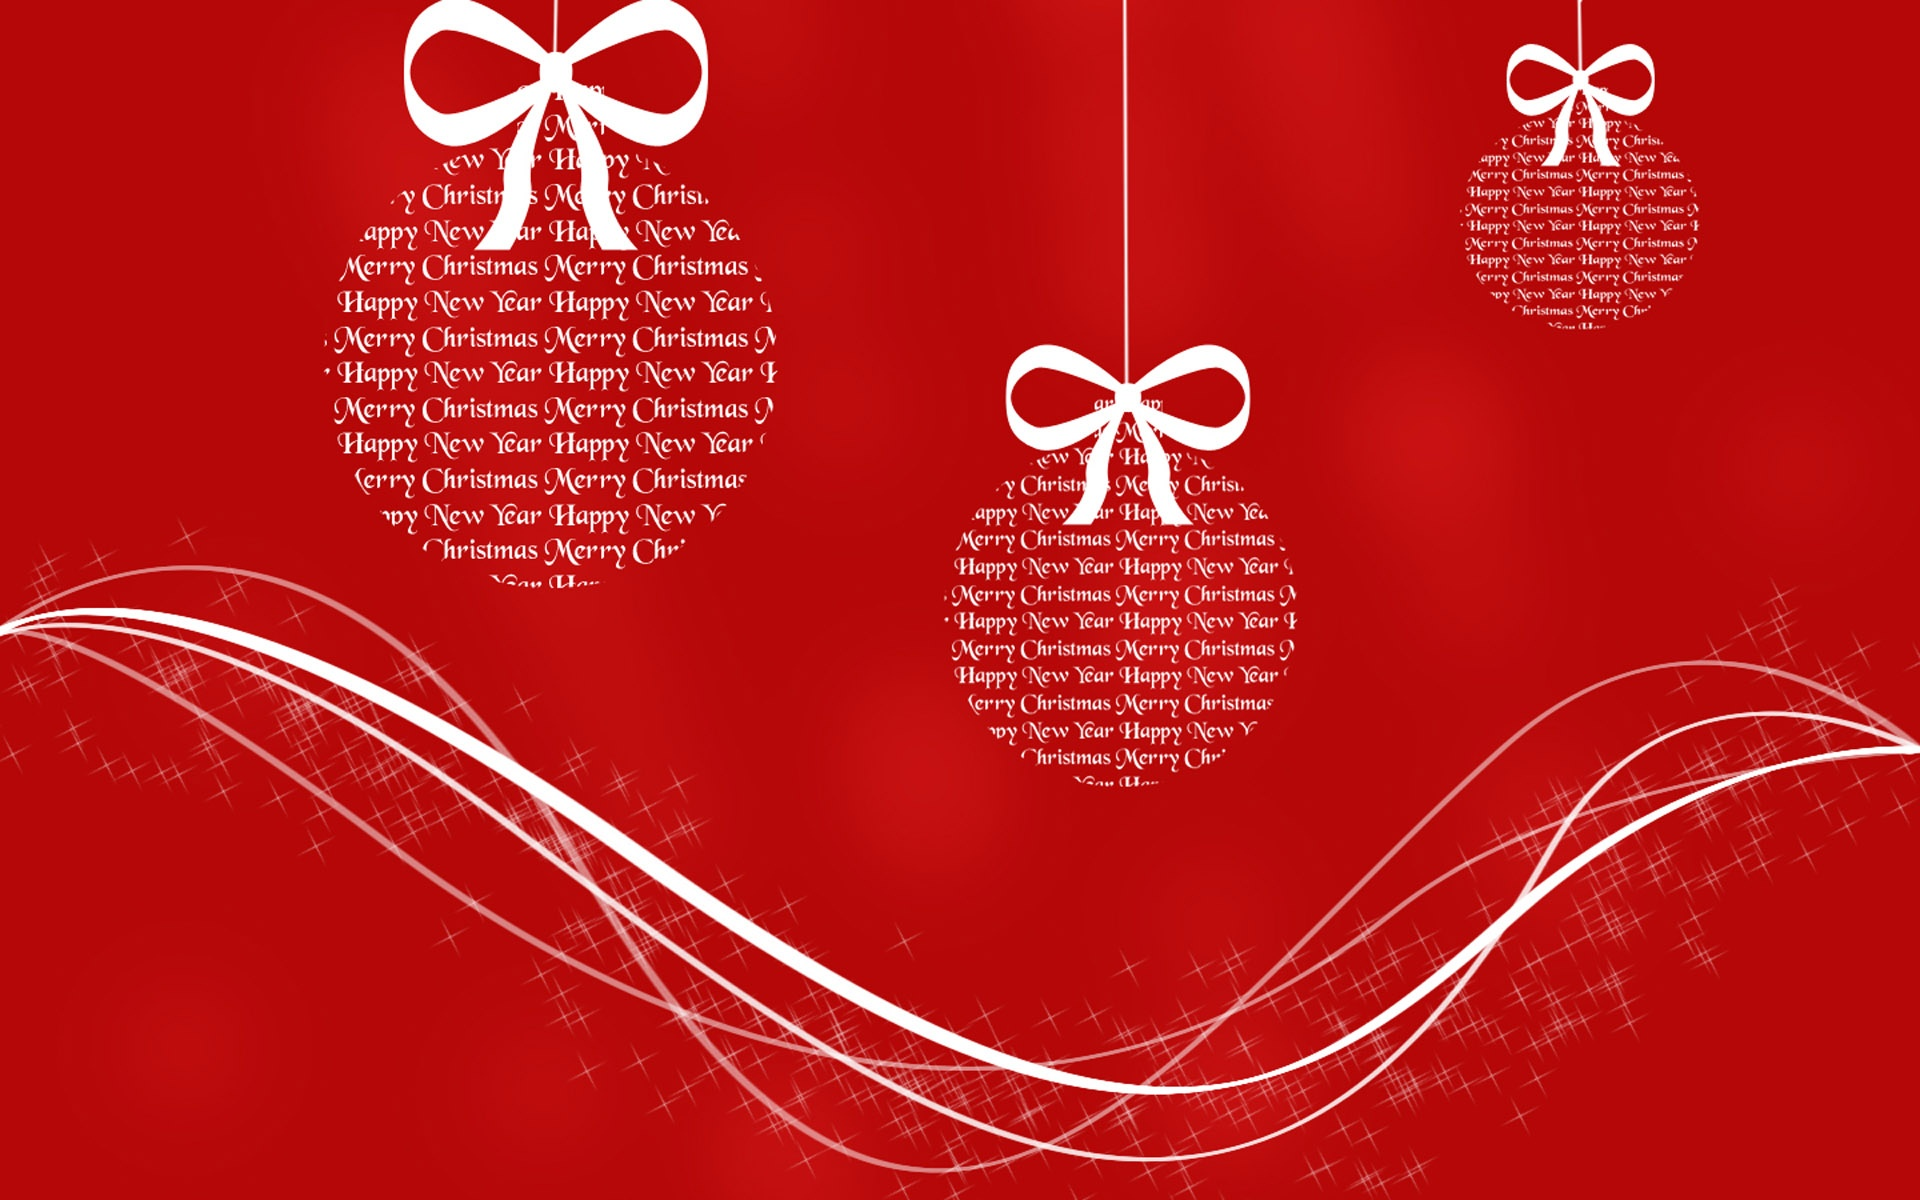 merry christmas wallpapers tablet